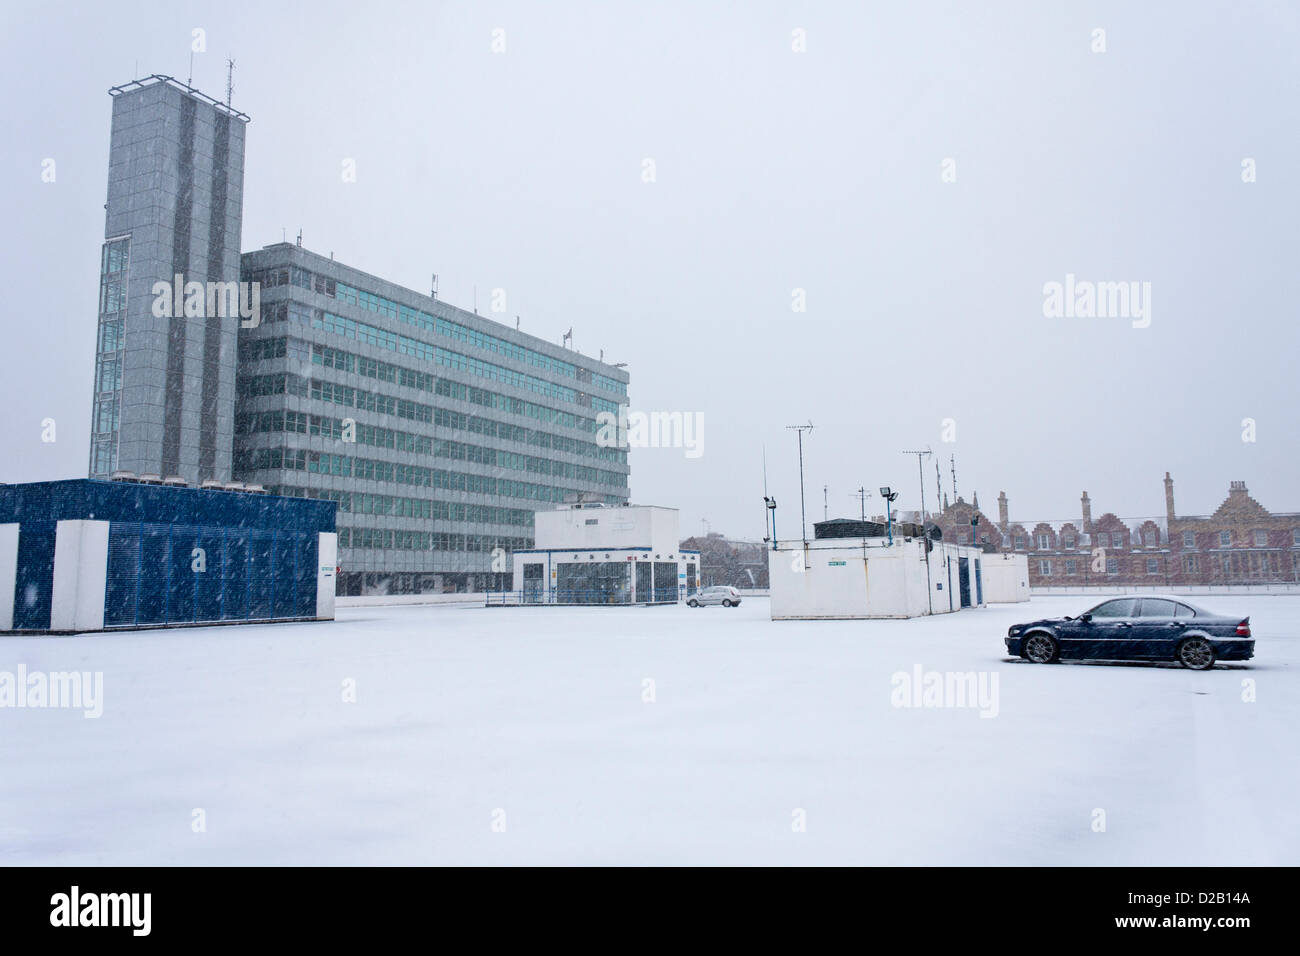 18th January 2013. Reading, Berkshire, UK. The top level of the Broad Street Mall shopping centre car park is nearly - Stock Image